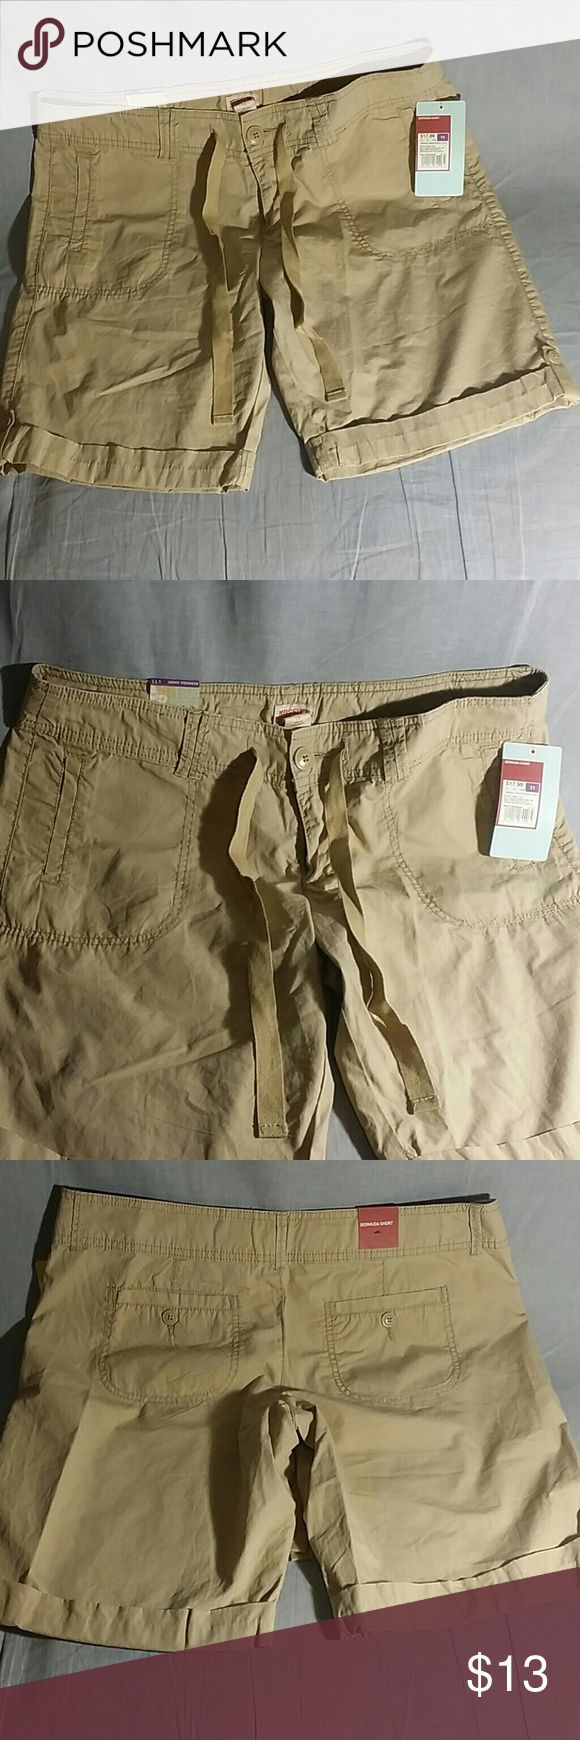 "MOSSIMO Bermuda Shorts Pants Tan Size 11 Cotton Women's Shorts Item is NEW measurements 17"" INSEAM 9.5"" TALL 17"" 100% cotton. Mossimo Supply Co Shorts Bermudas"